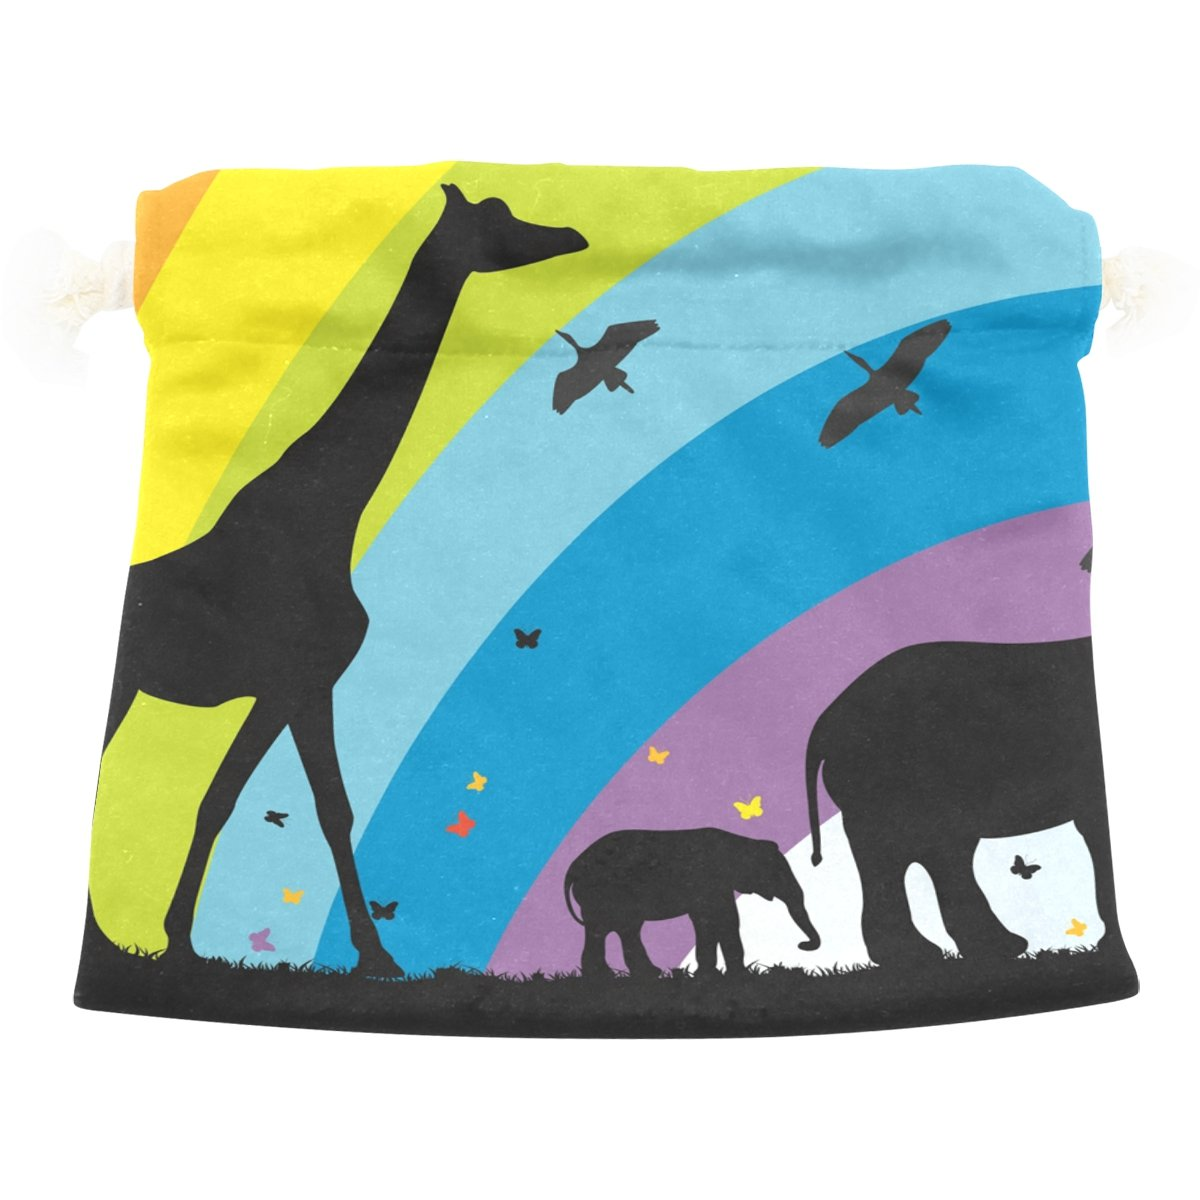 Dragon Sword Giraffe And Elephants In Africa Gift Bags Jewelry Drawstring Pouches for Wedding Party, 6x8 Inch